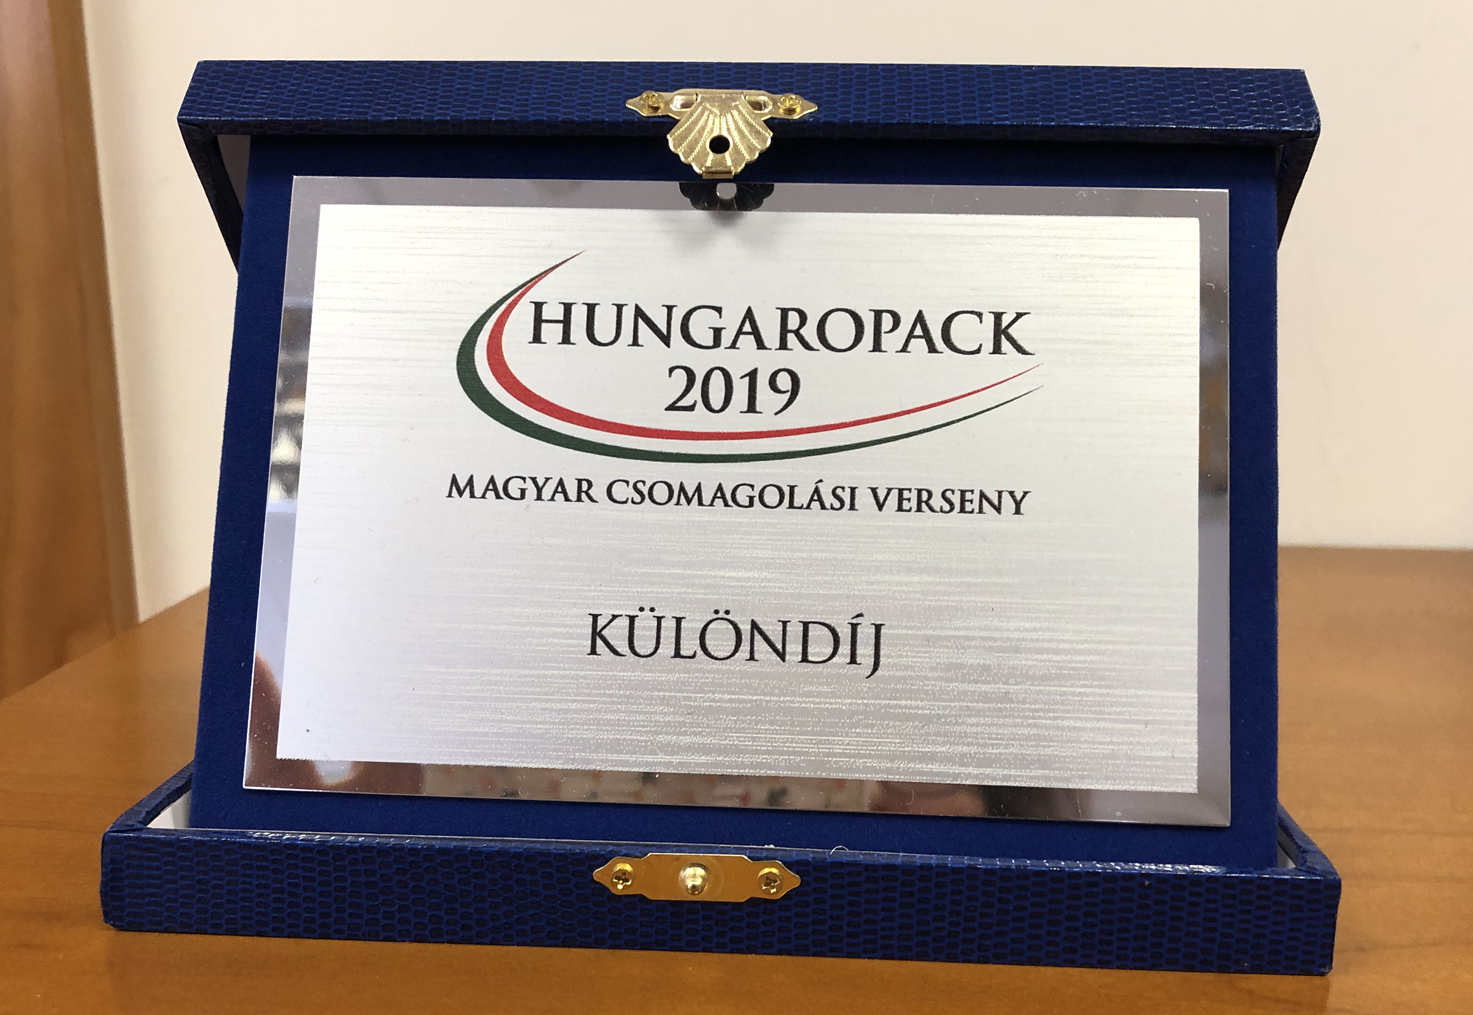 WE WON A SPECIAL AWARD AT HUNGAROPACK COMPETITION!